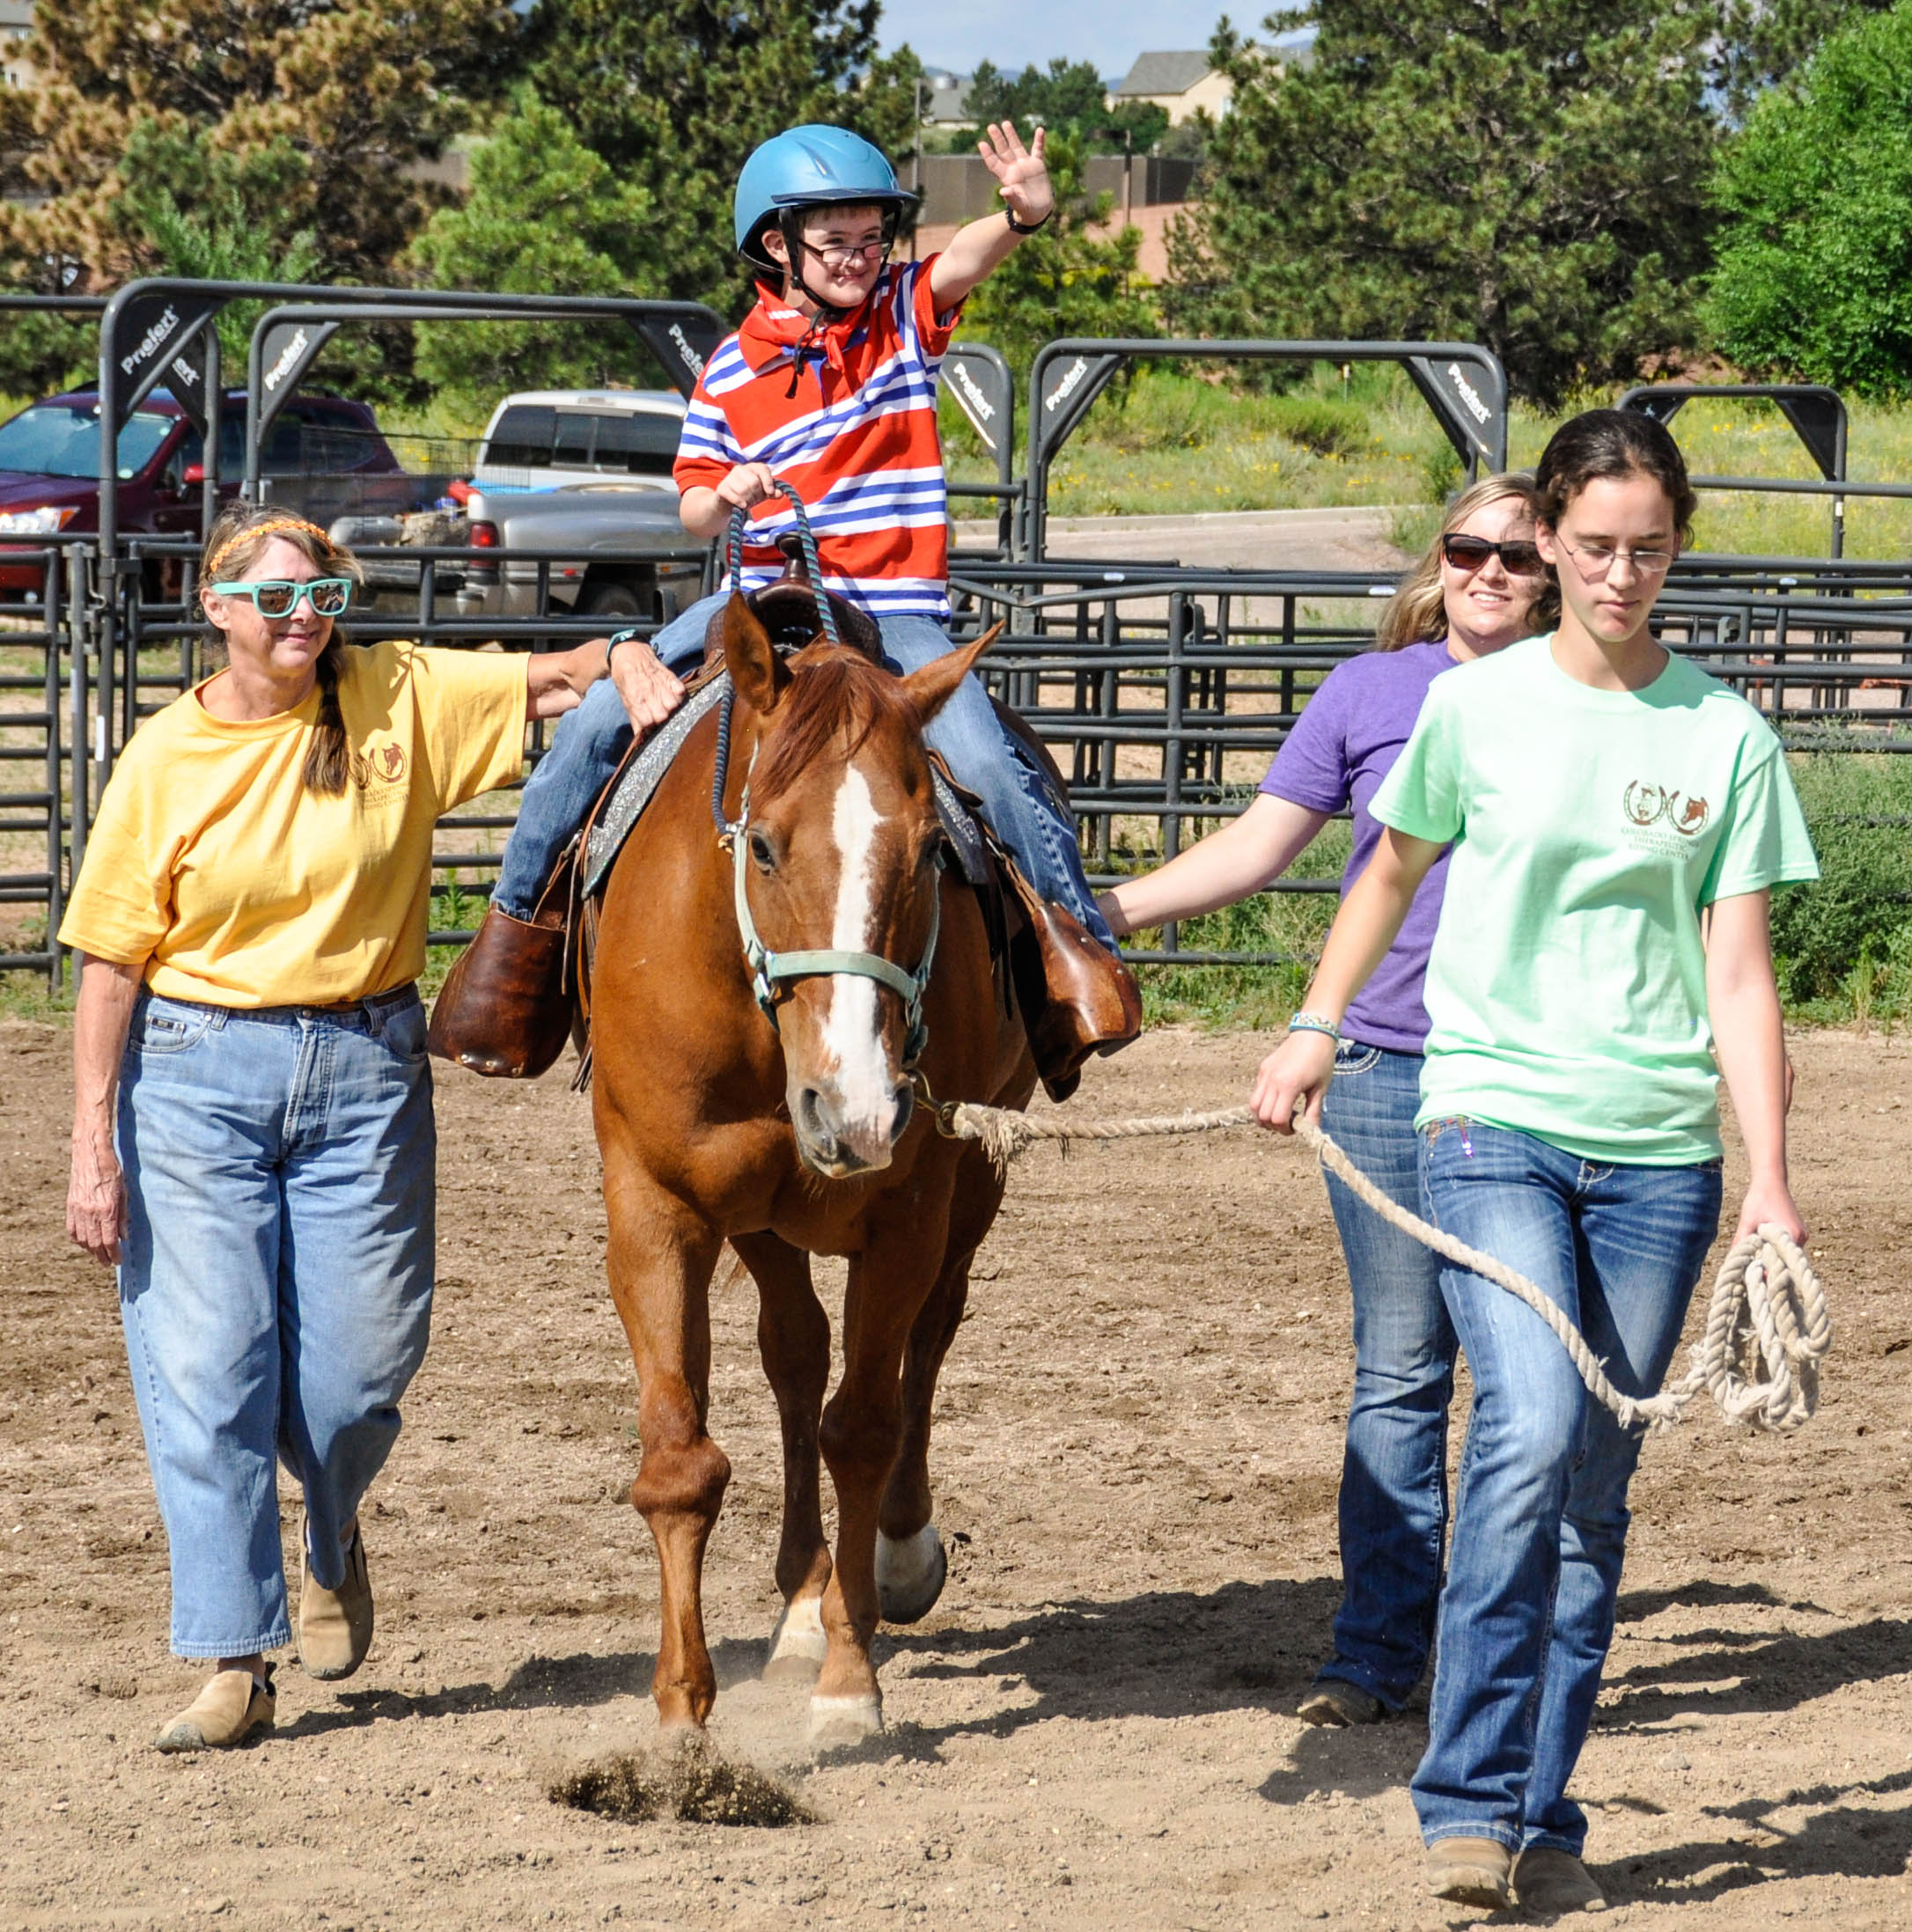 Professional Guaranteed House Painting Western Springs: 21st Annual Pikes Peak Special Rodeo Presented By Pikes